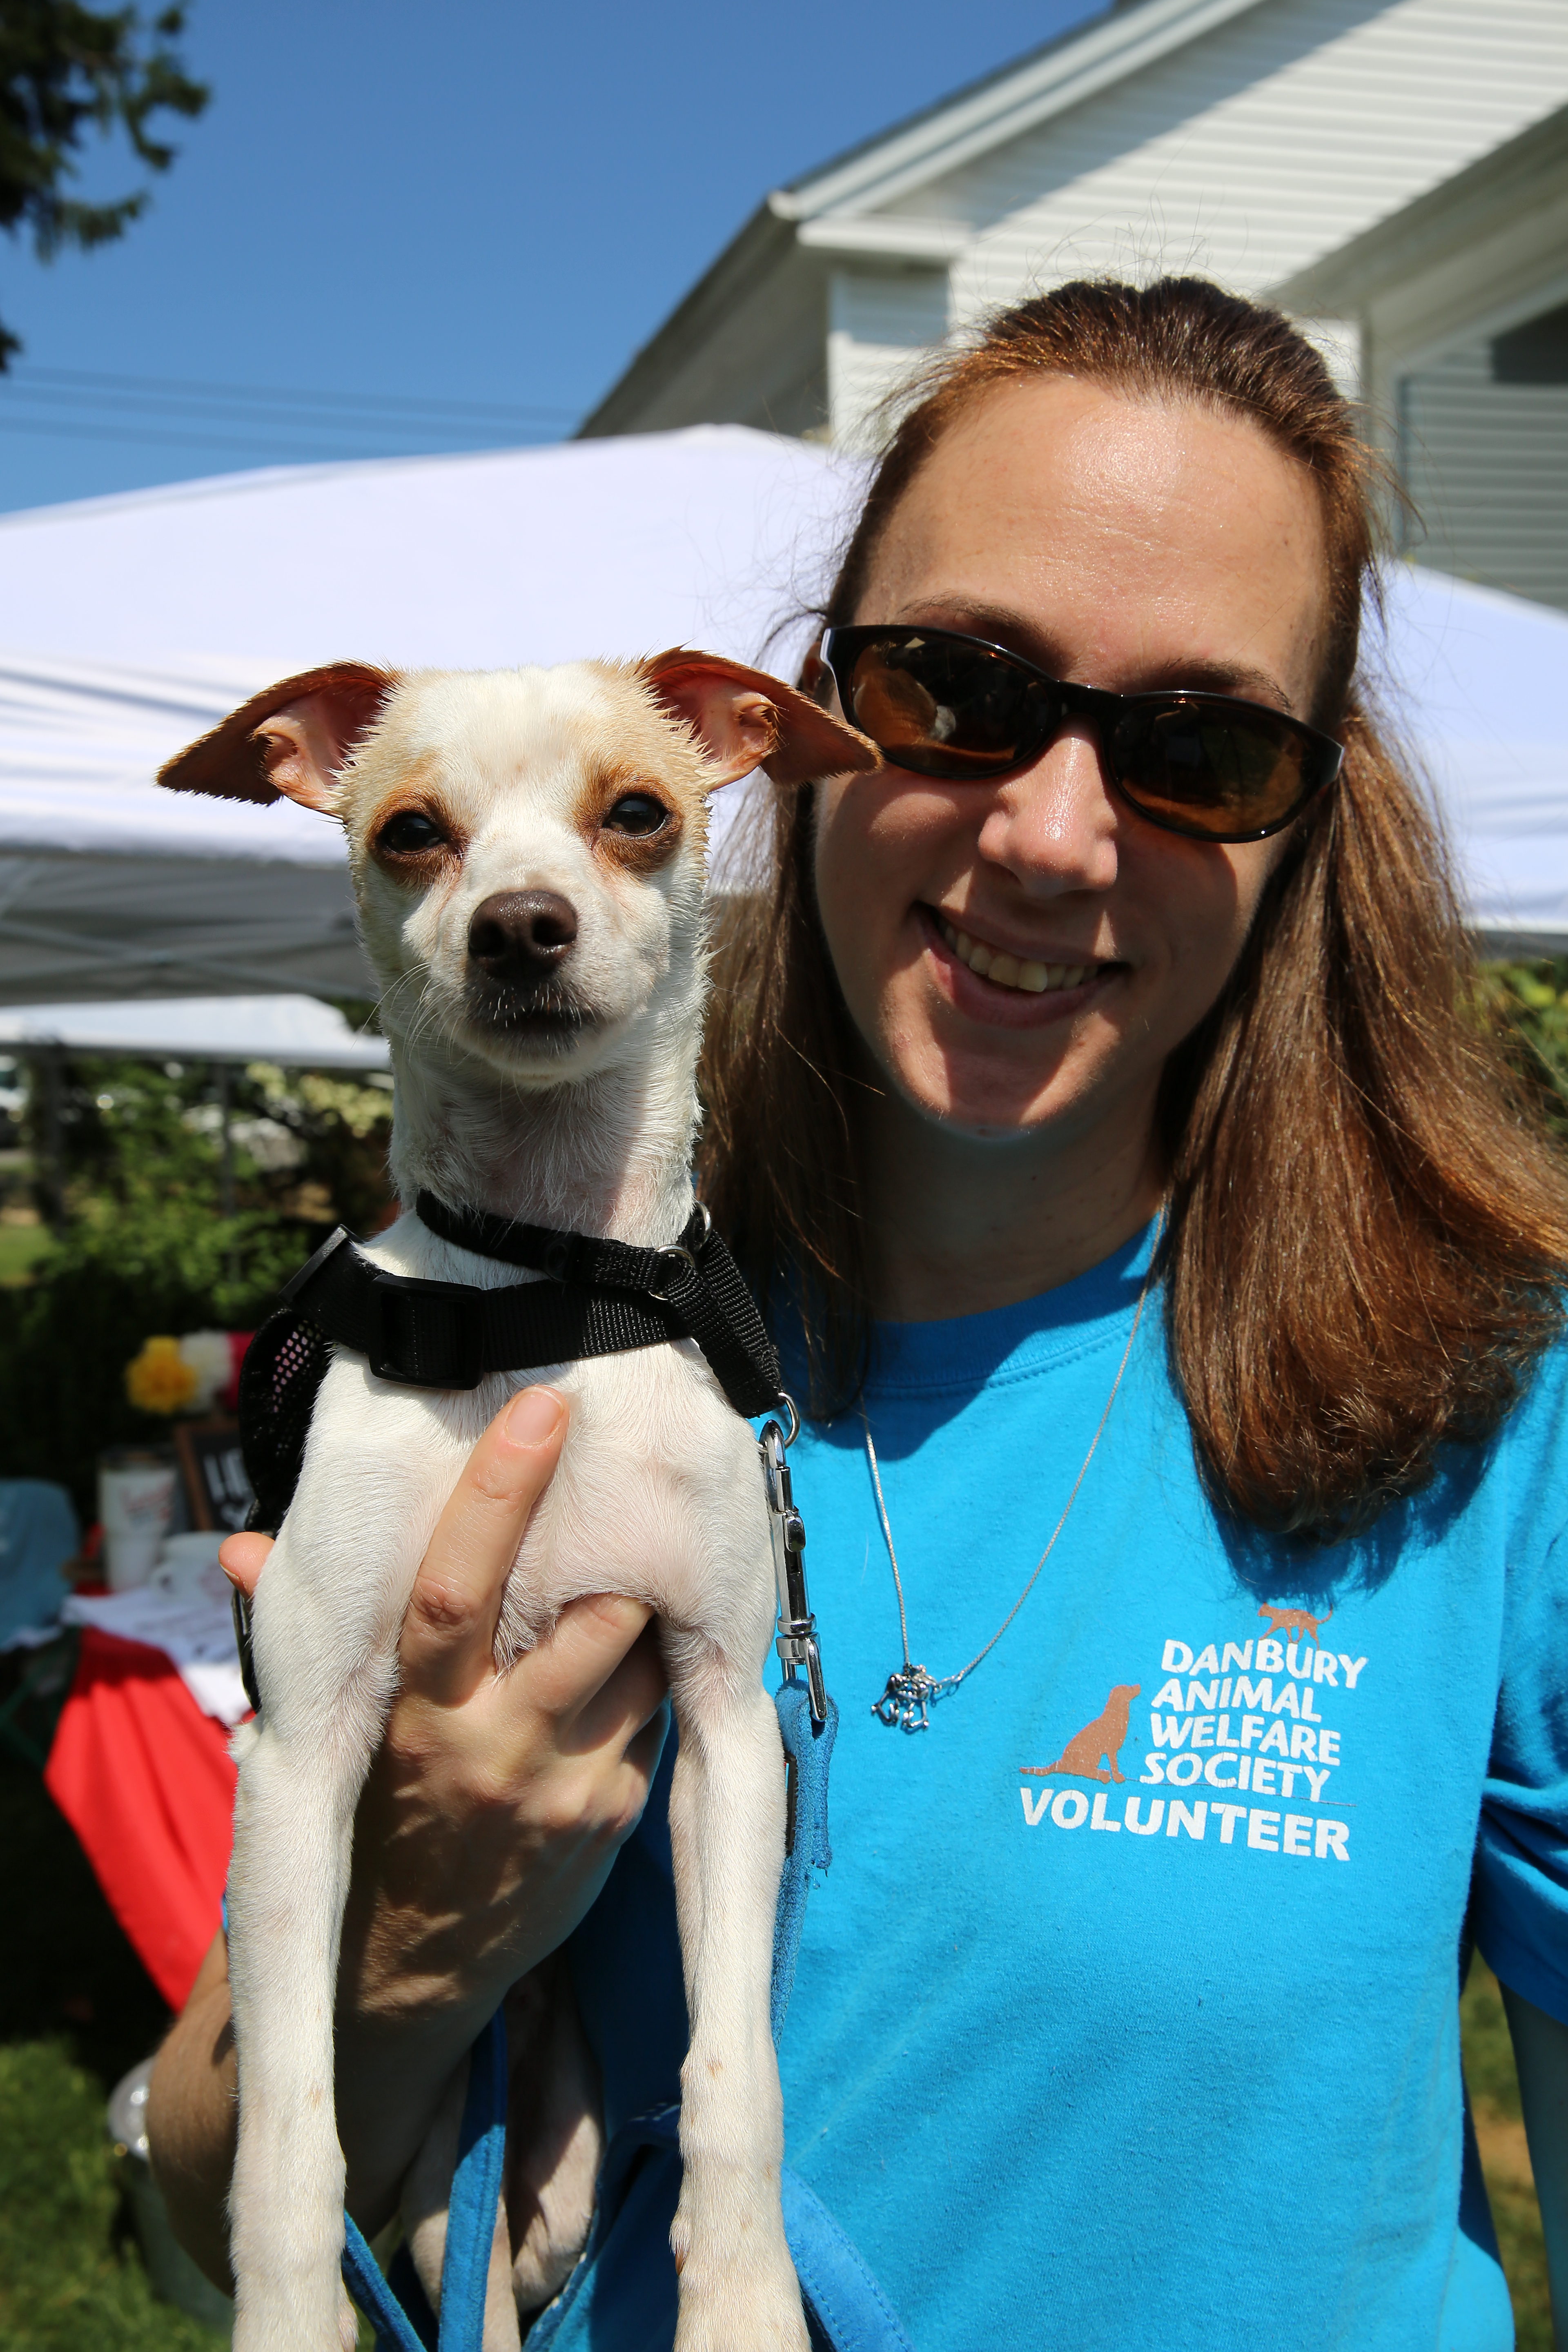 Paws, Smiles, And Finding New Friends At Adoption Event | The